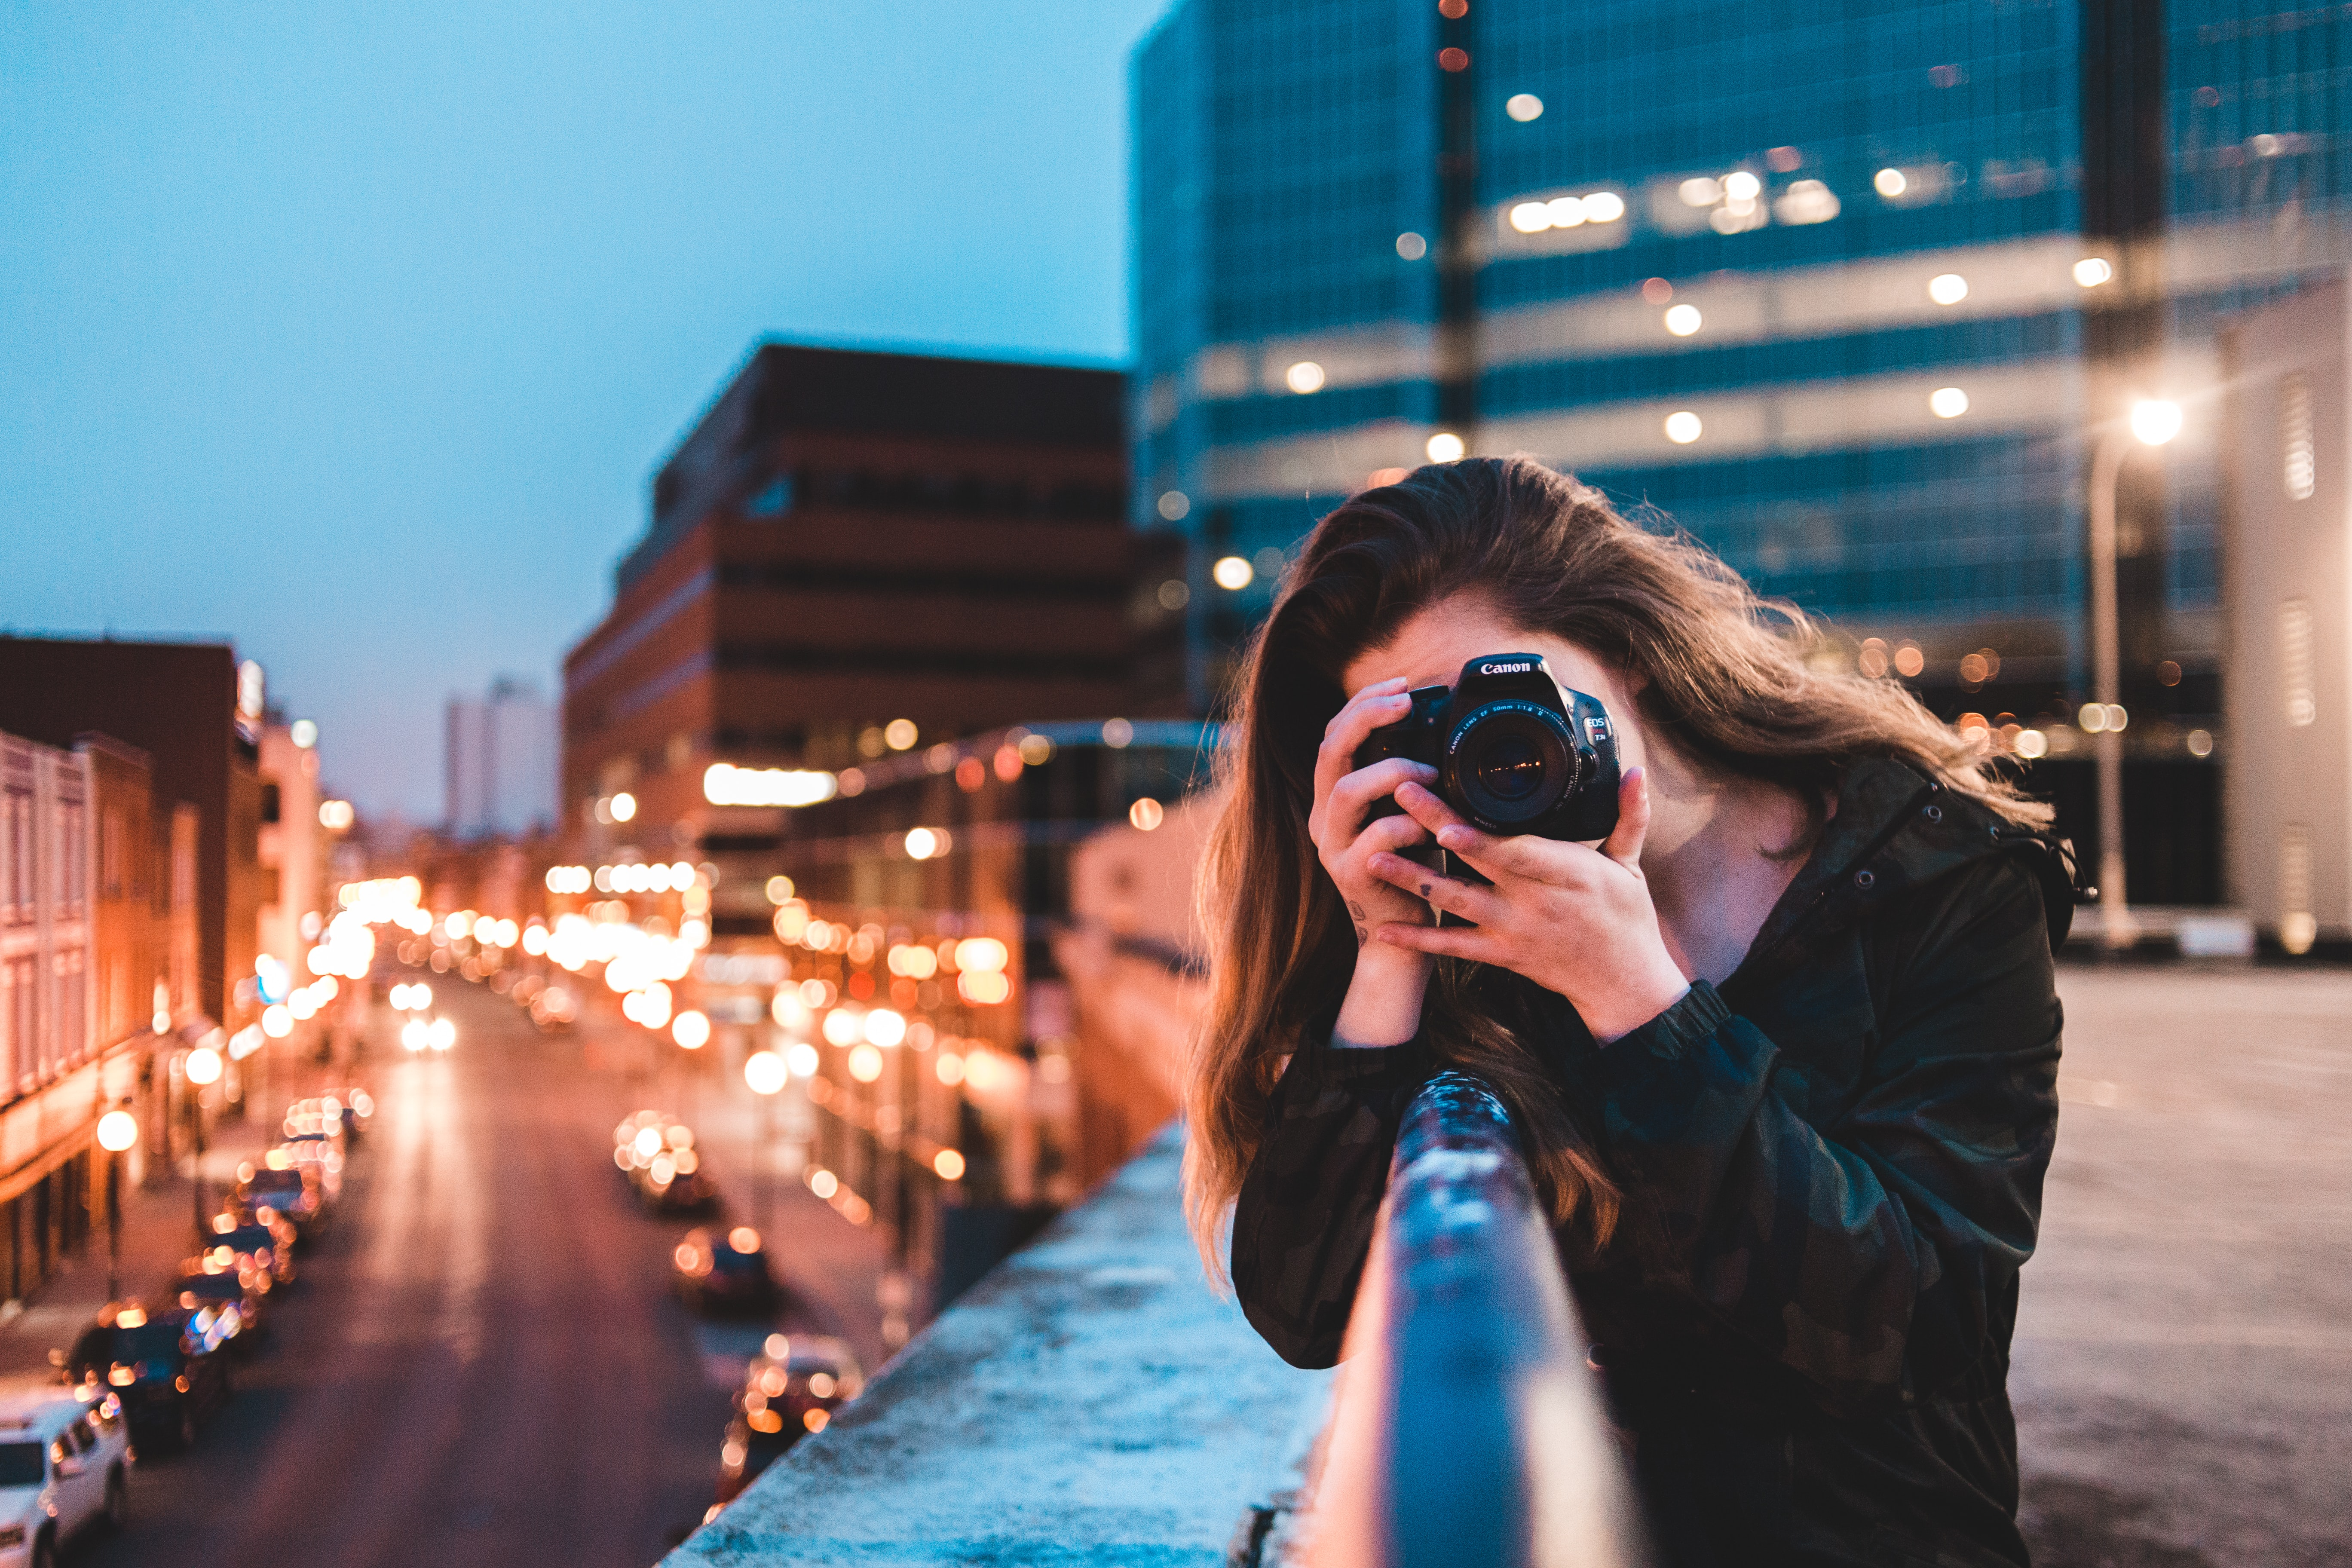 shutter speed shooting in low lighting tips for photographers beginner photography